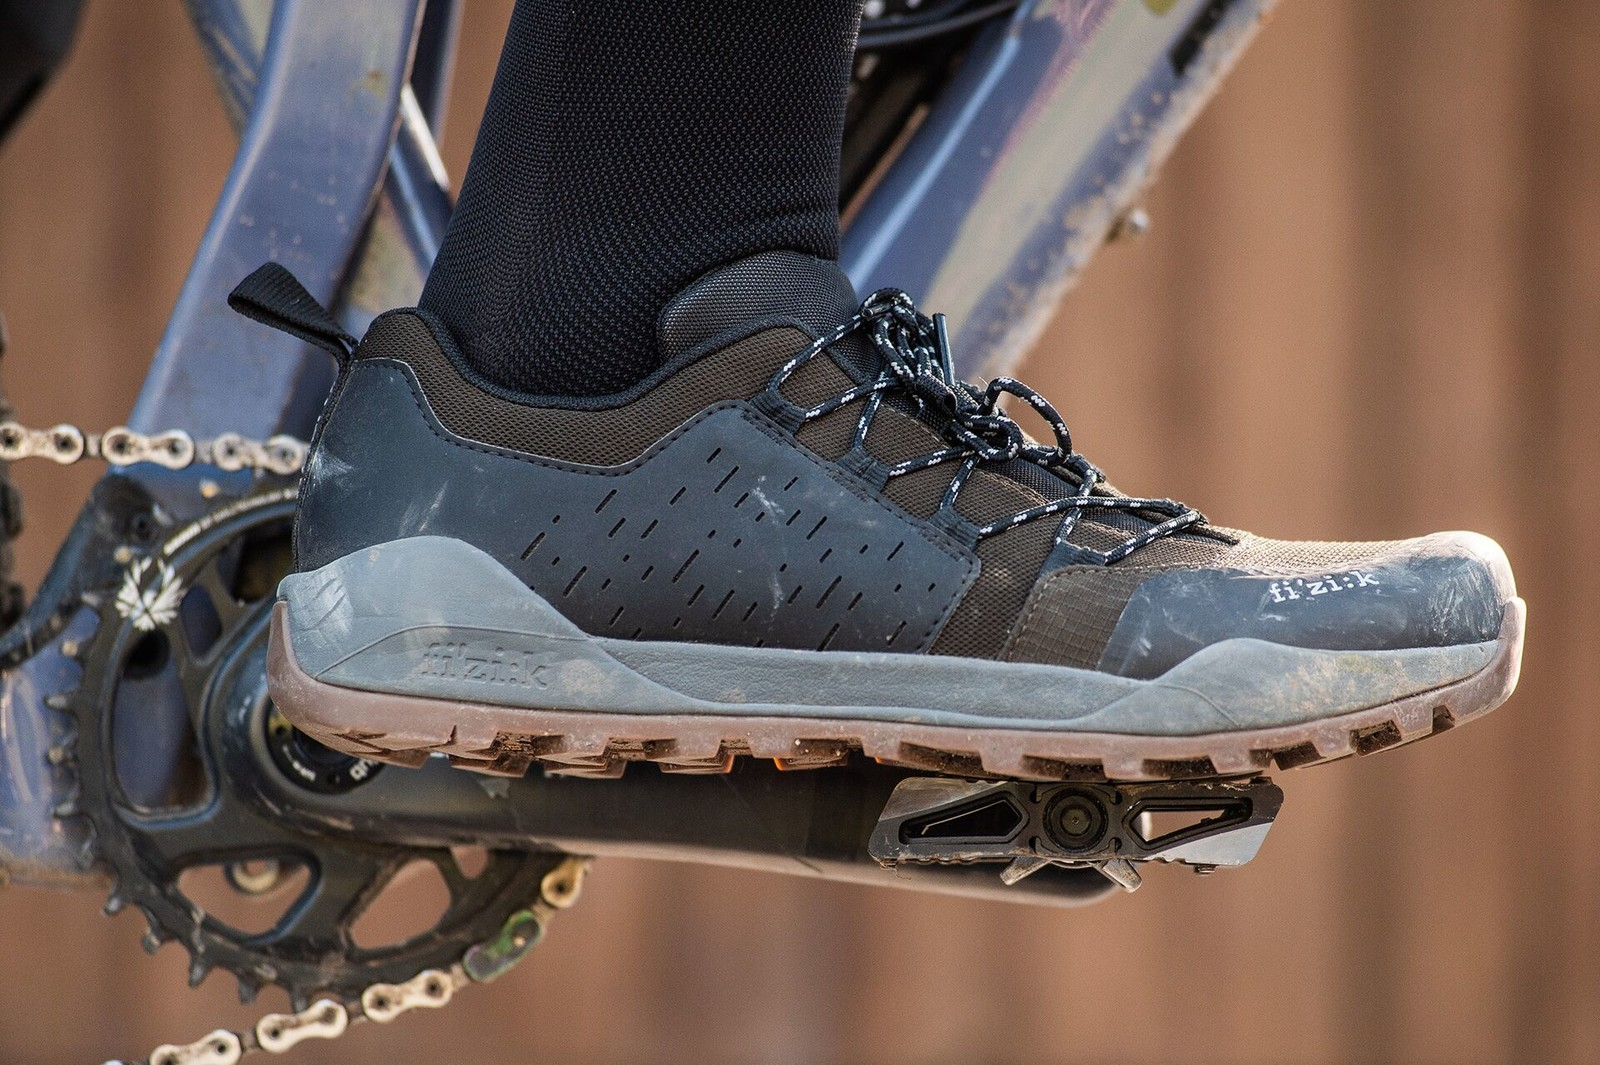 New fizik Mountain Bike Shoes Launched